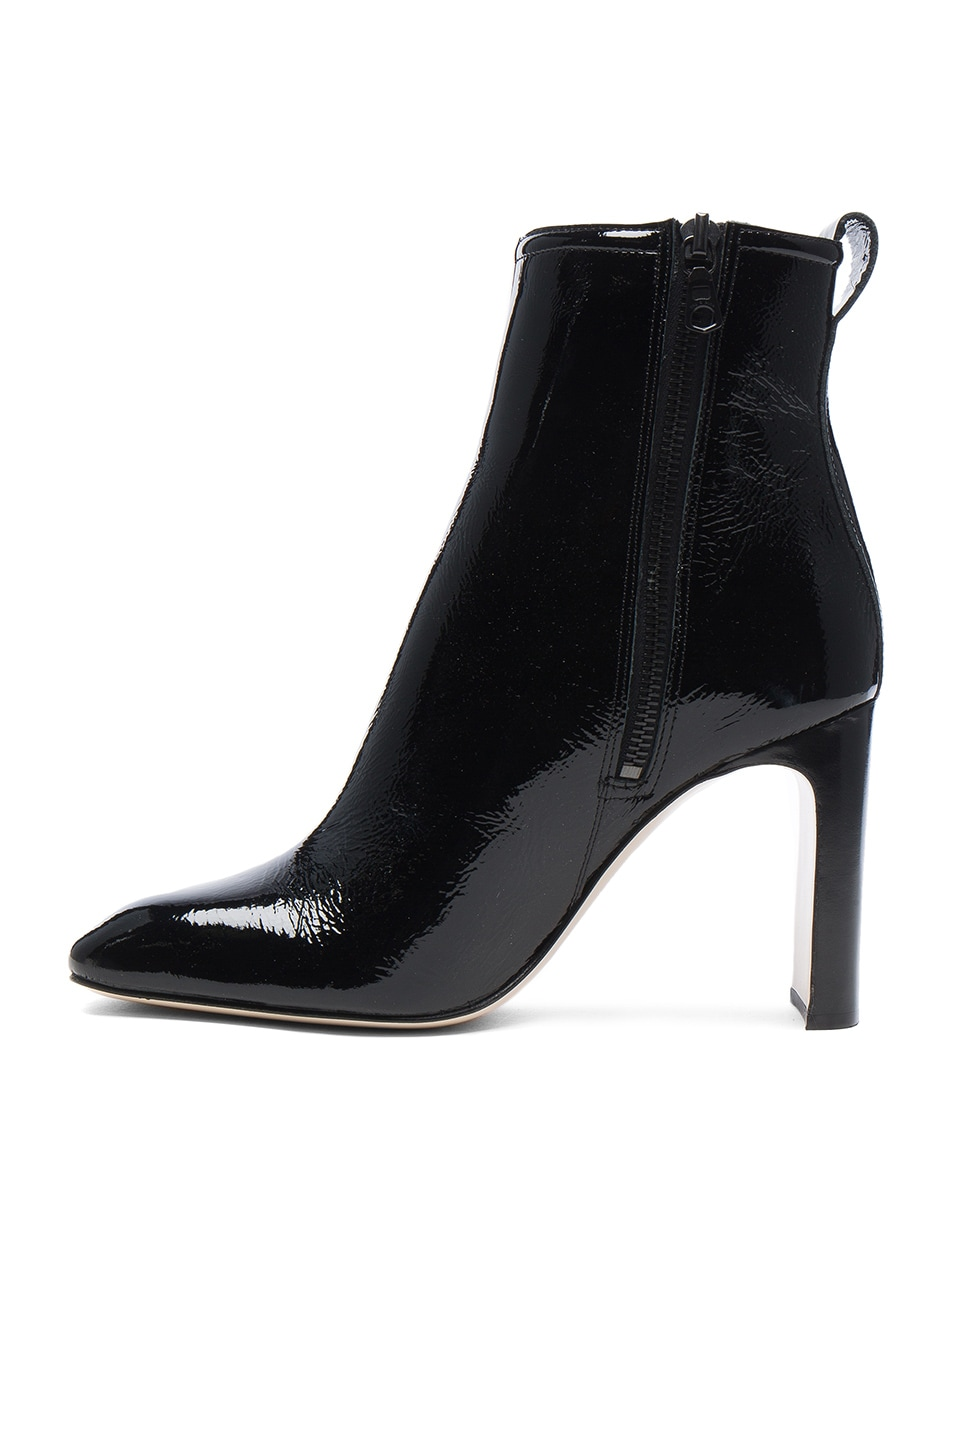 Image 5 of Rag & Bone Patent Leather Ellis Boot in Black